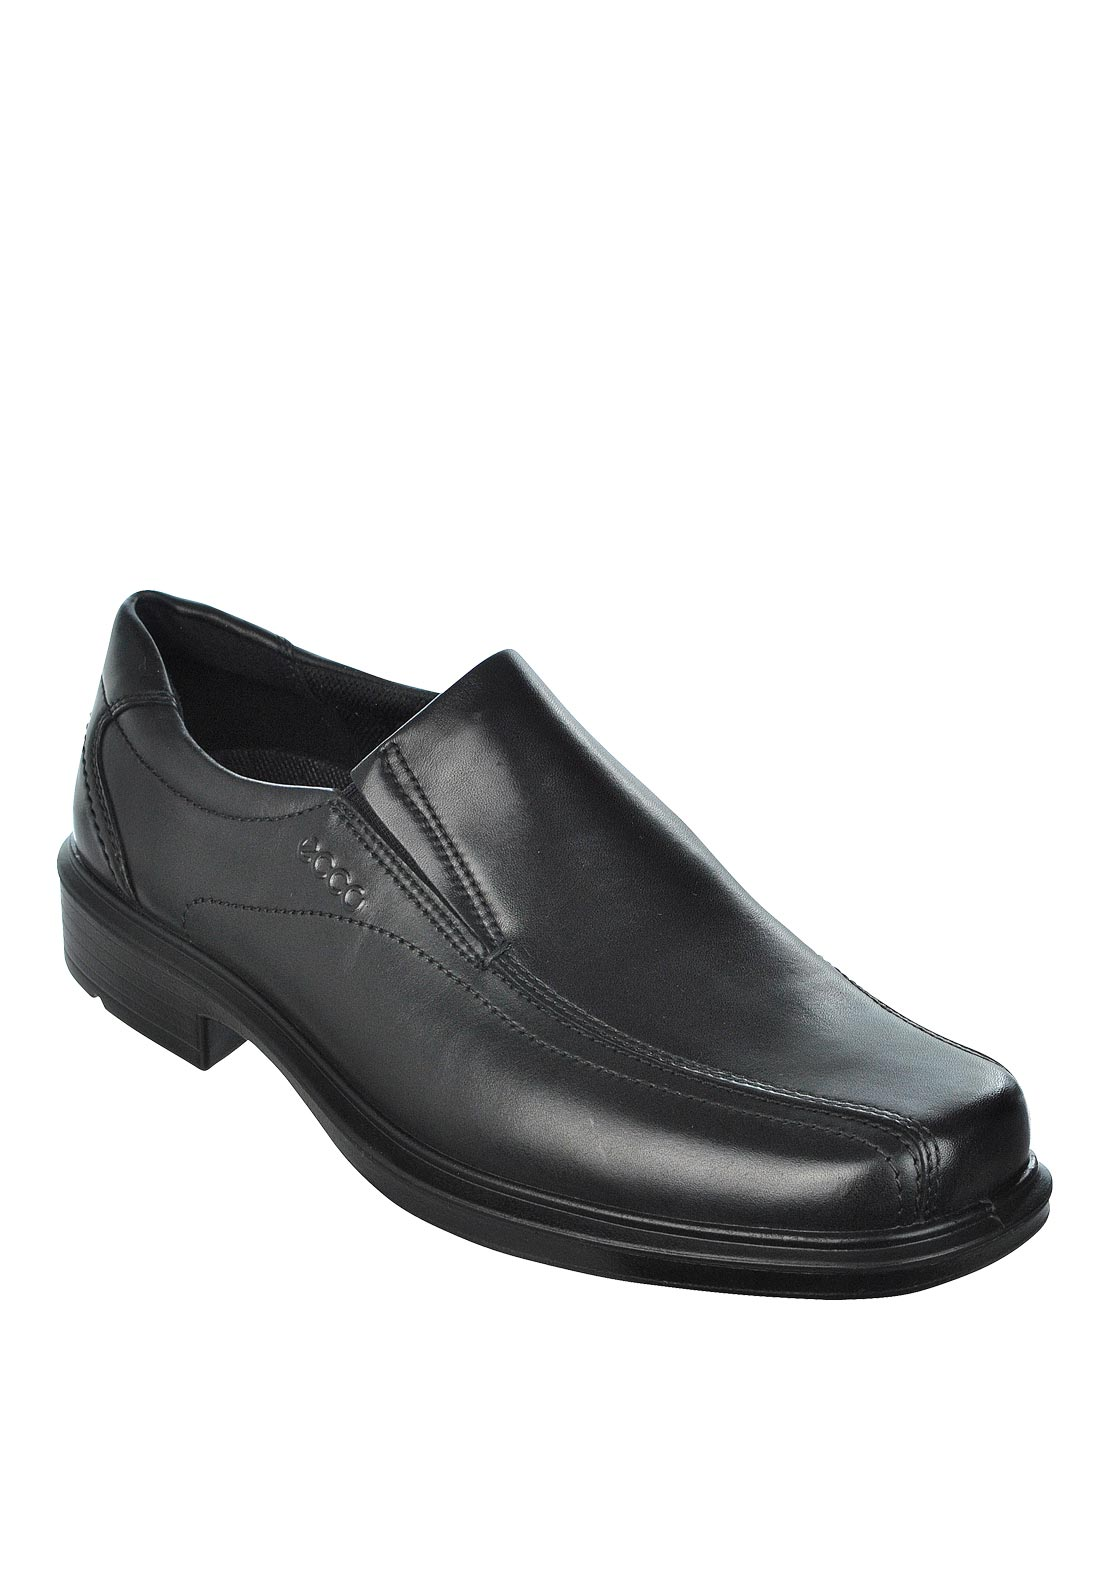 Ecco Mens Helsinki Slip-On Leather Shoe, Black